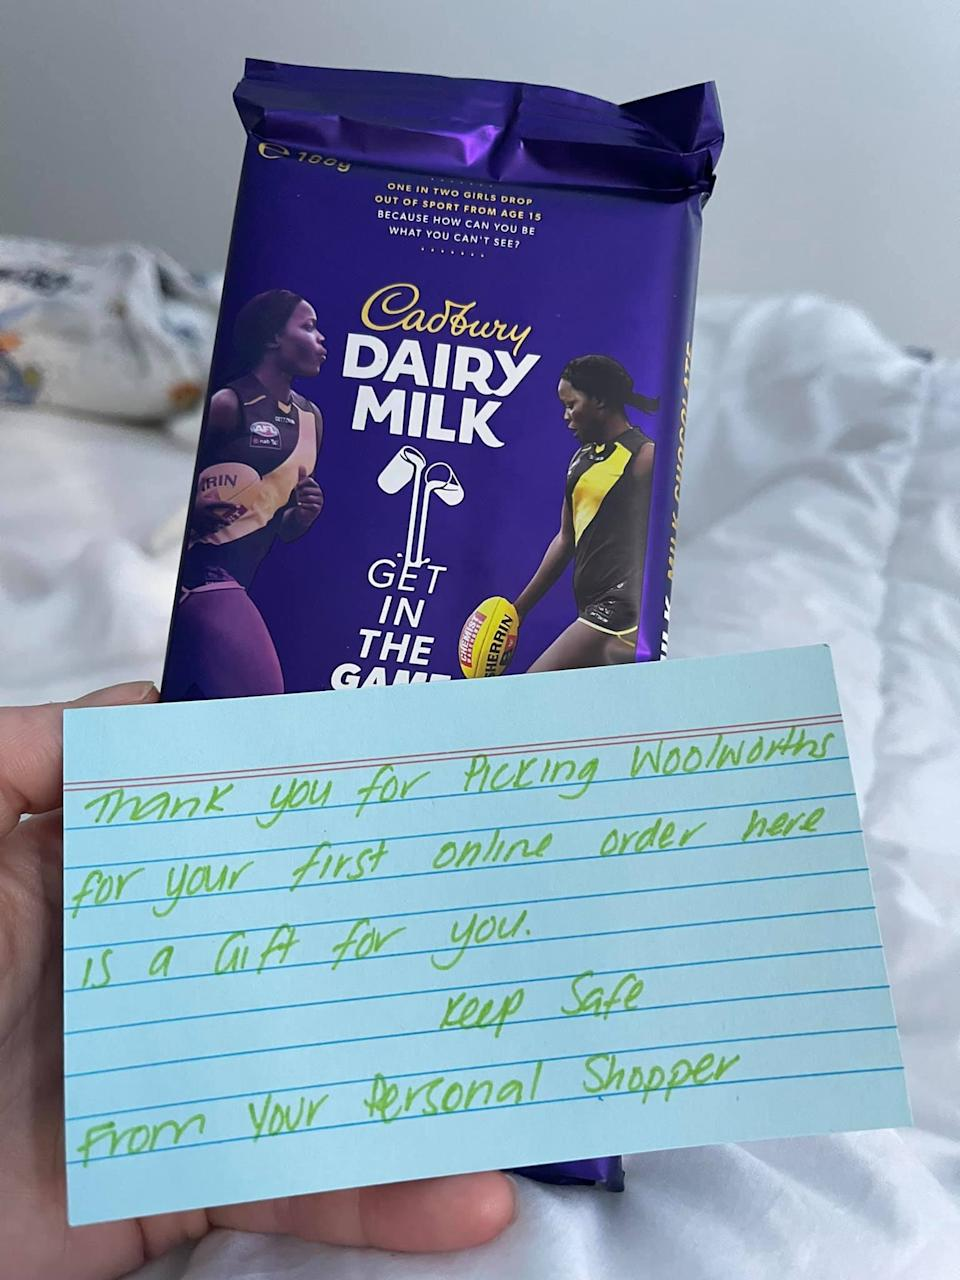 Dairy Milk chocolate and note from Woolworths staff. Source: Facebook